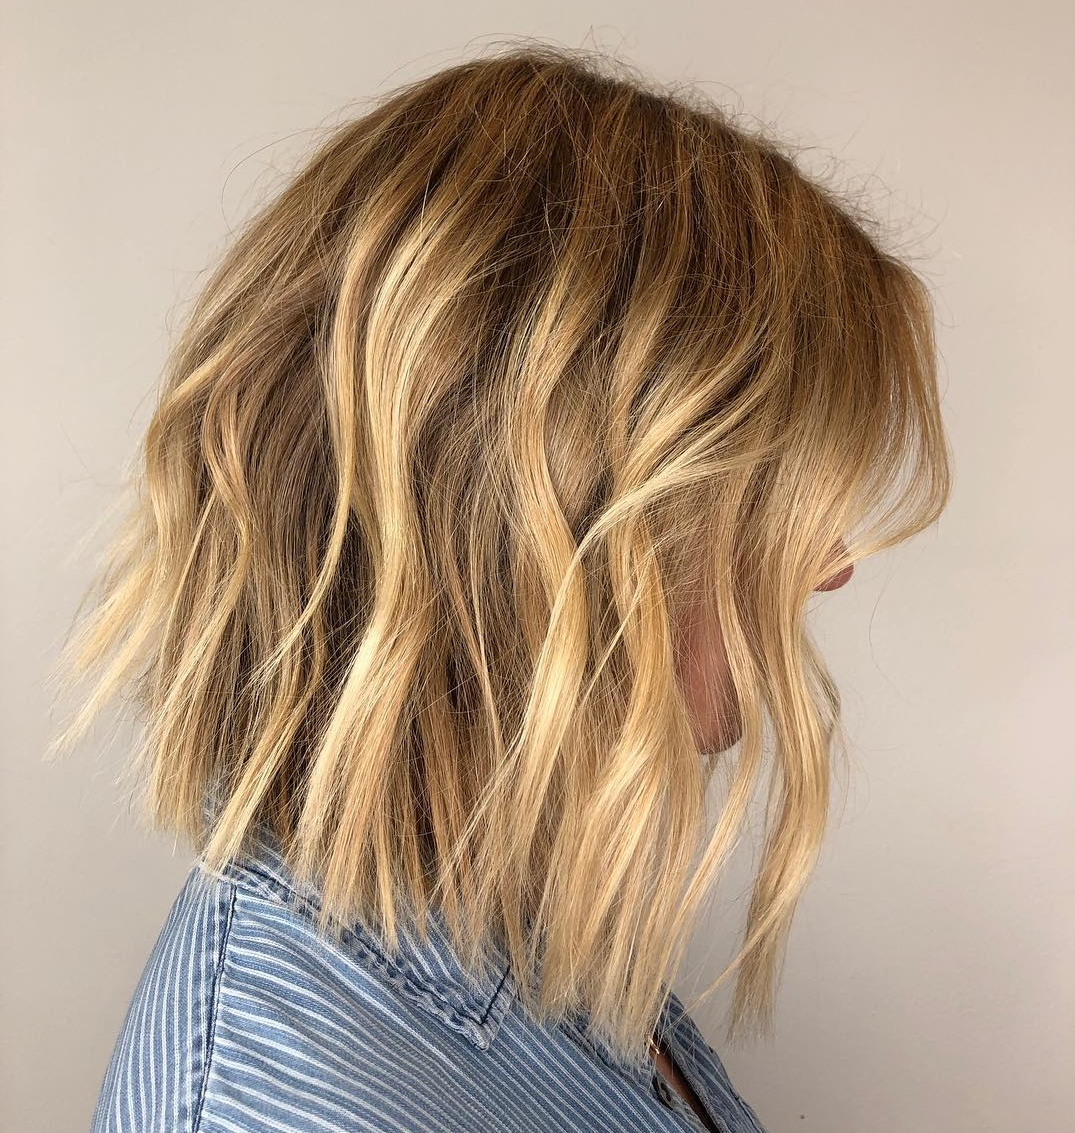 How To Pull Off Medium Length Haircuts And Hairstyles In 2019 With Regard To Well Liked Mid Back Brown U Shaped Haircuts With Swoopy Layers (View 9 of 20)